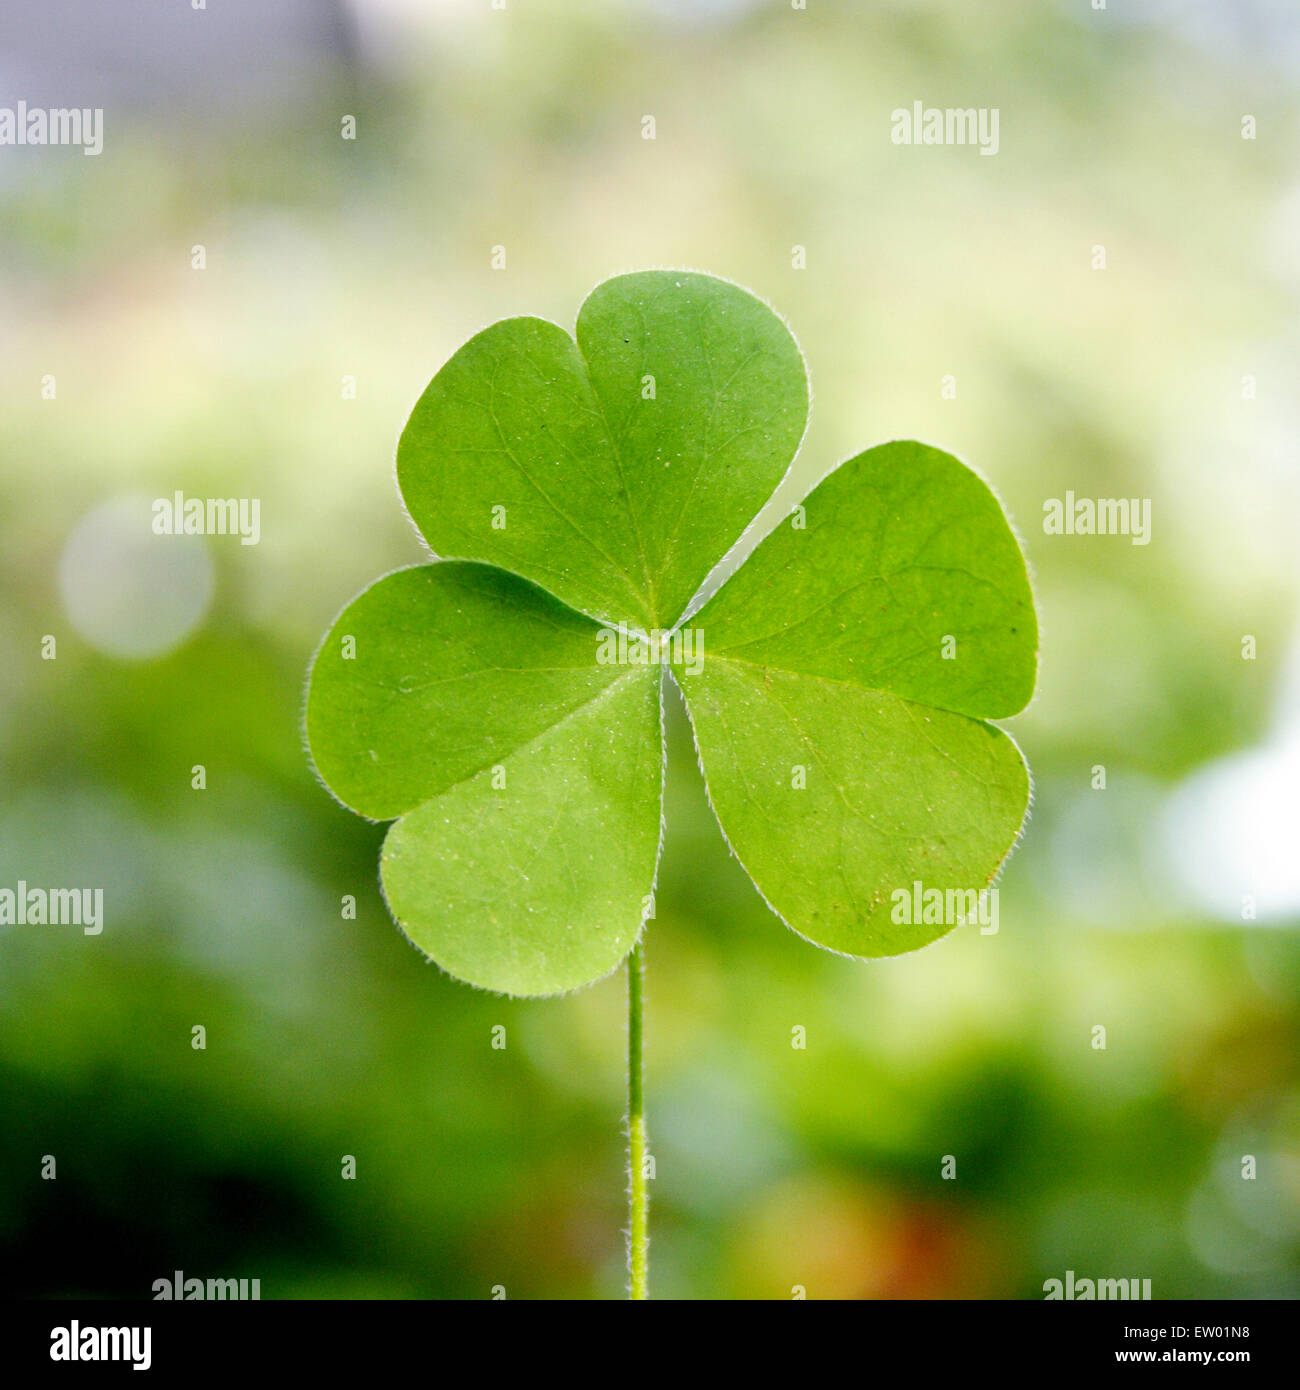 Shamrock Three Leaf Clover Against Green Background Stock Photo